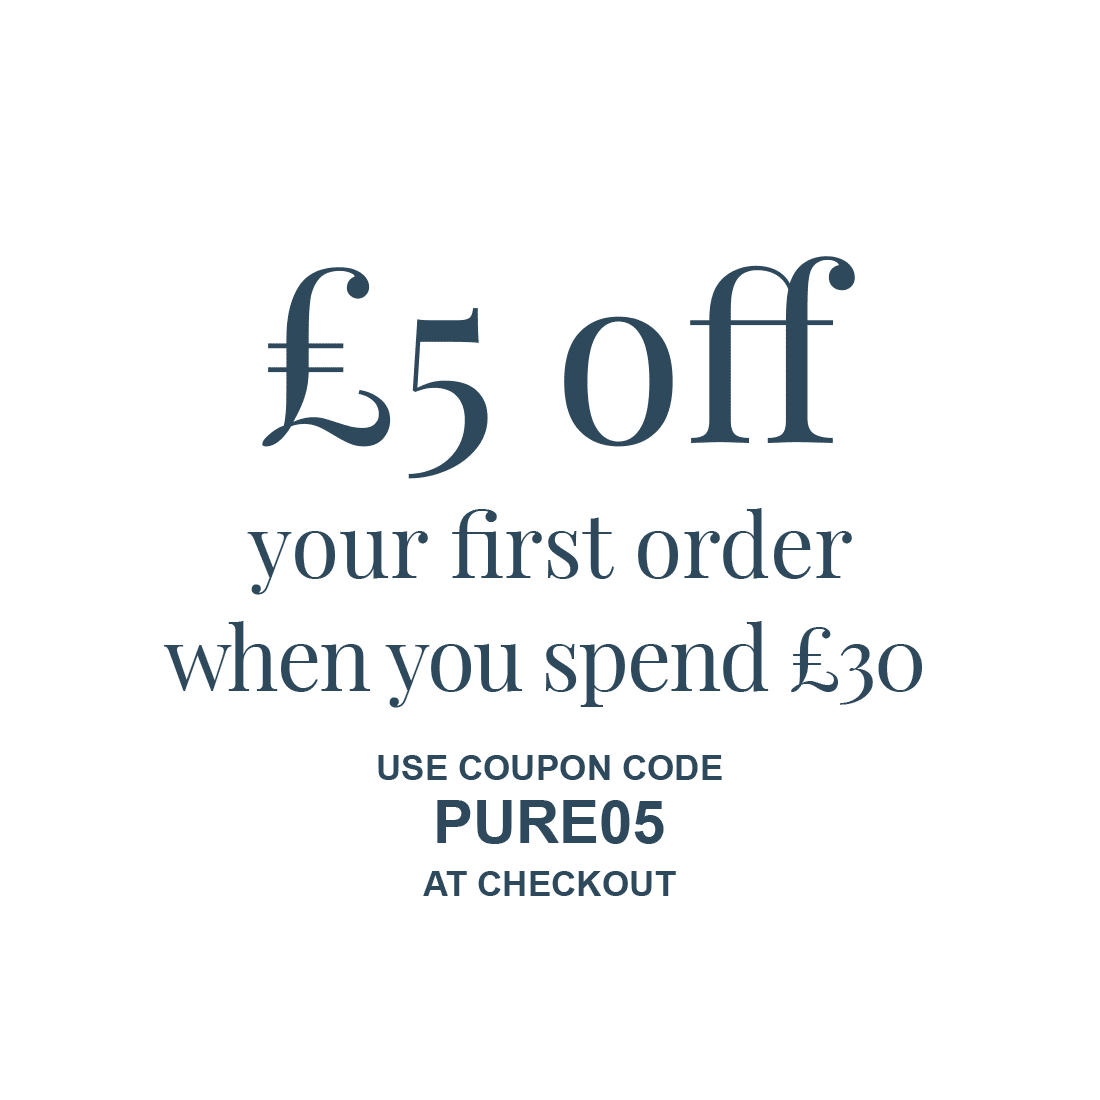 £5 off your first order when you spend £30 - Use coupon code PURE05 at checkout